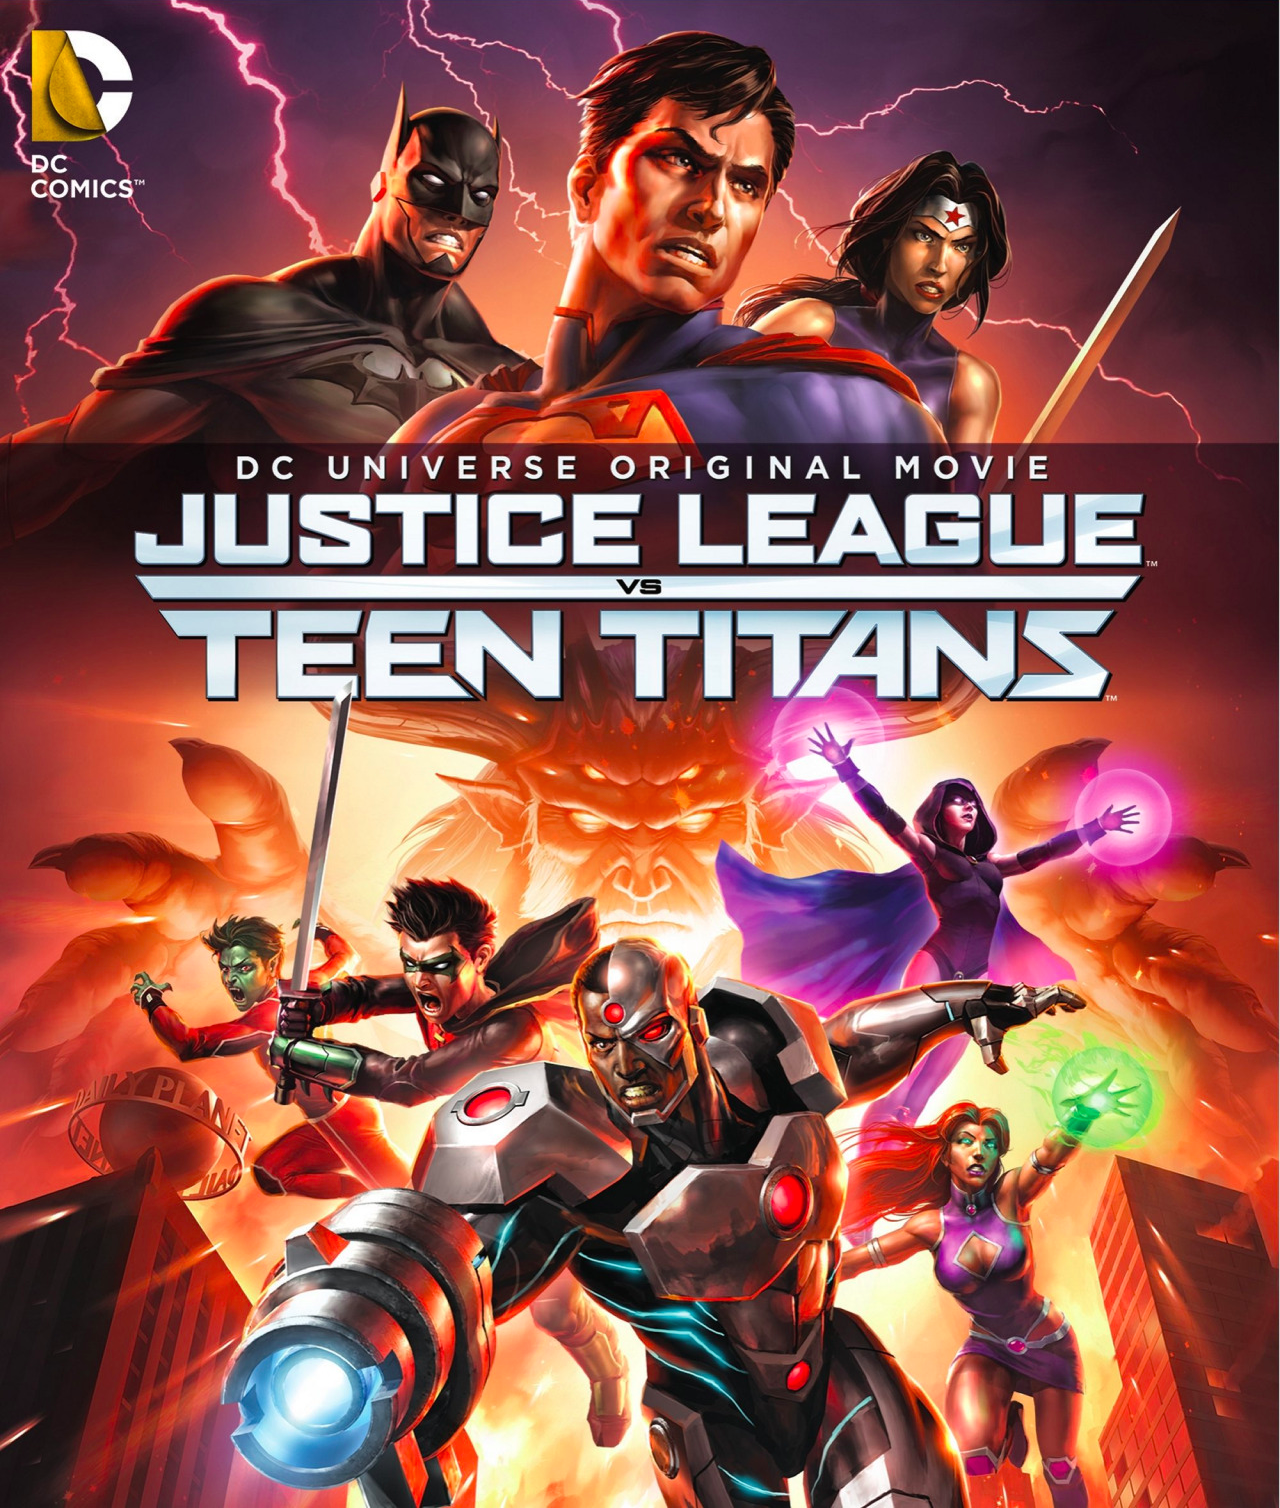 Justice League Vs Teen Titans Another Mediocre Dc -6963